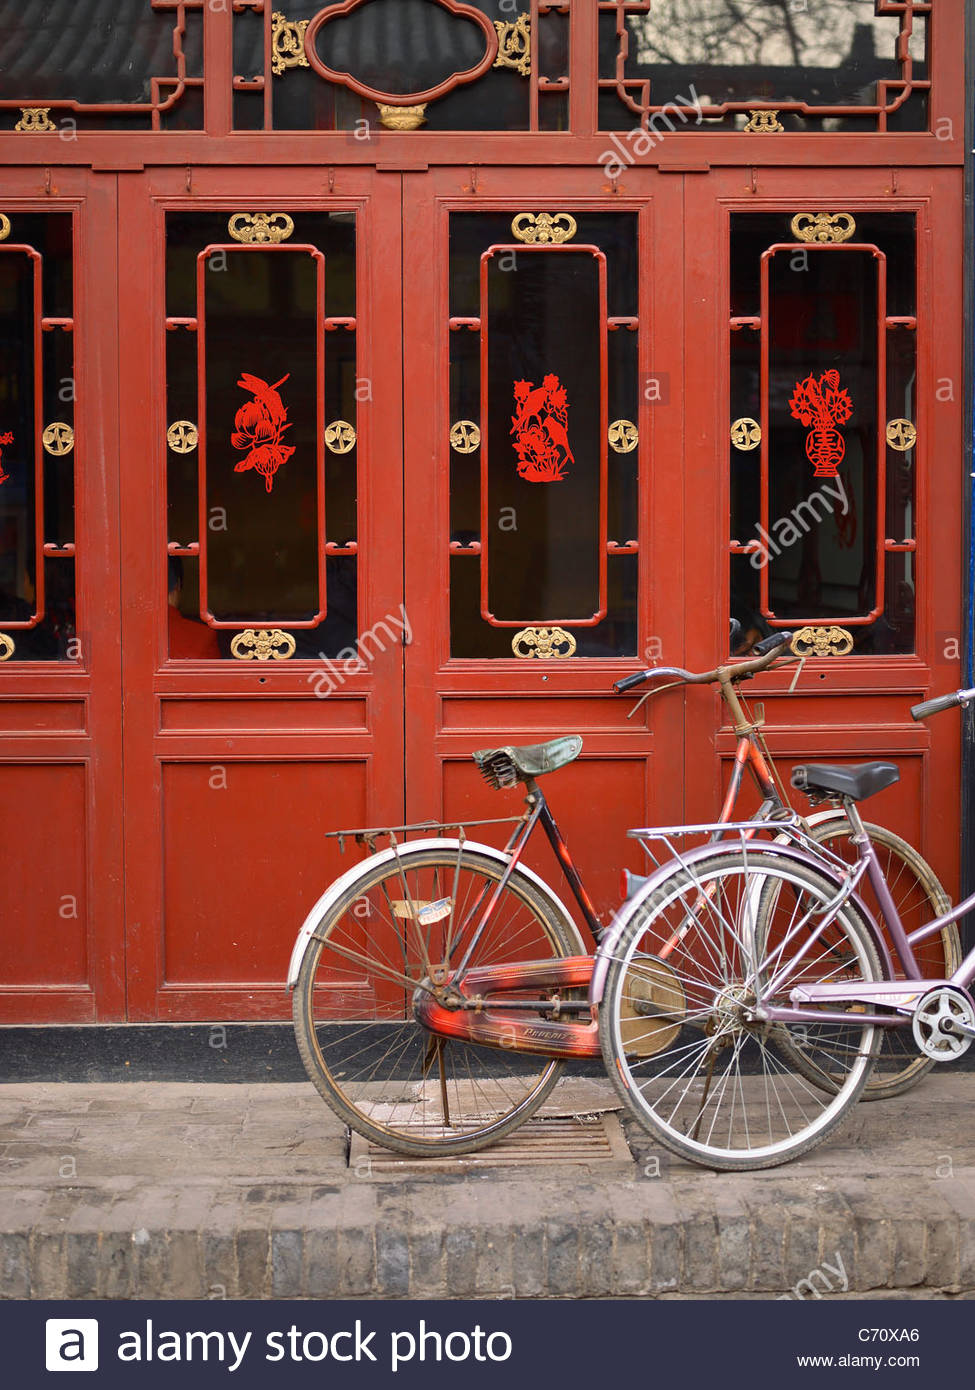 Bikes parked in front of Chinese cafe - Stock Image